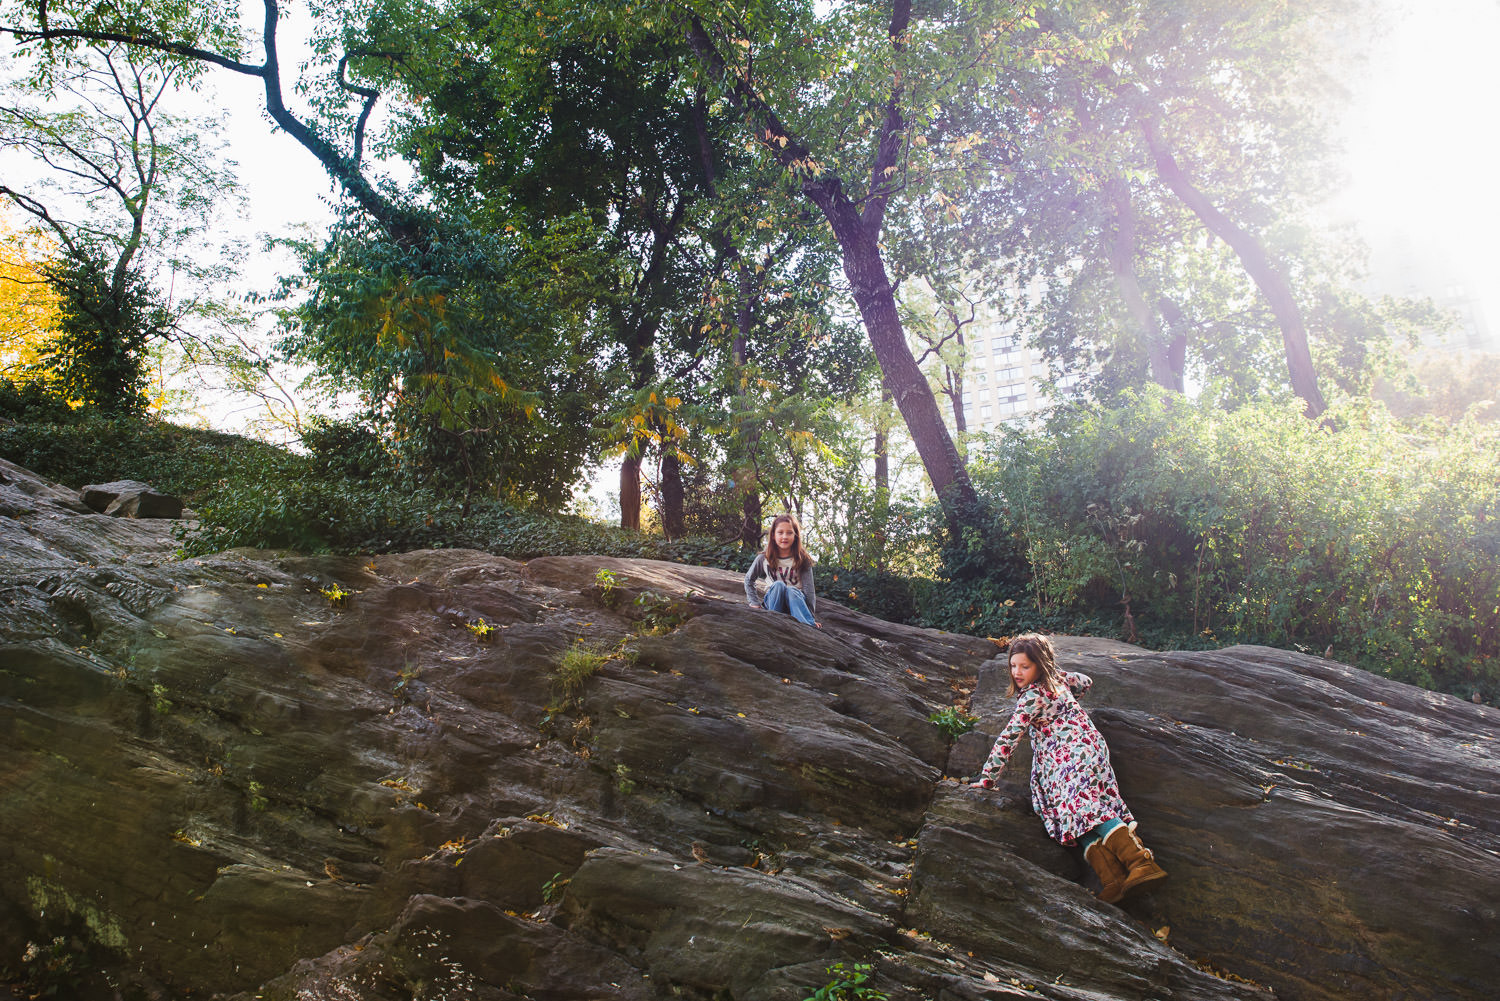 Two girls climb the rocks in Central Park.